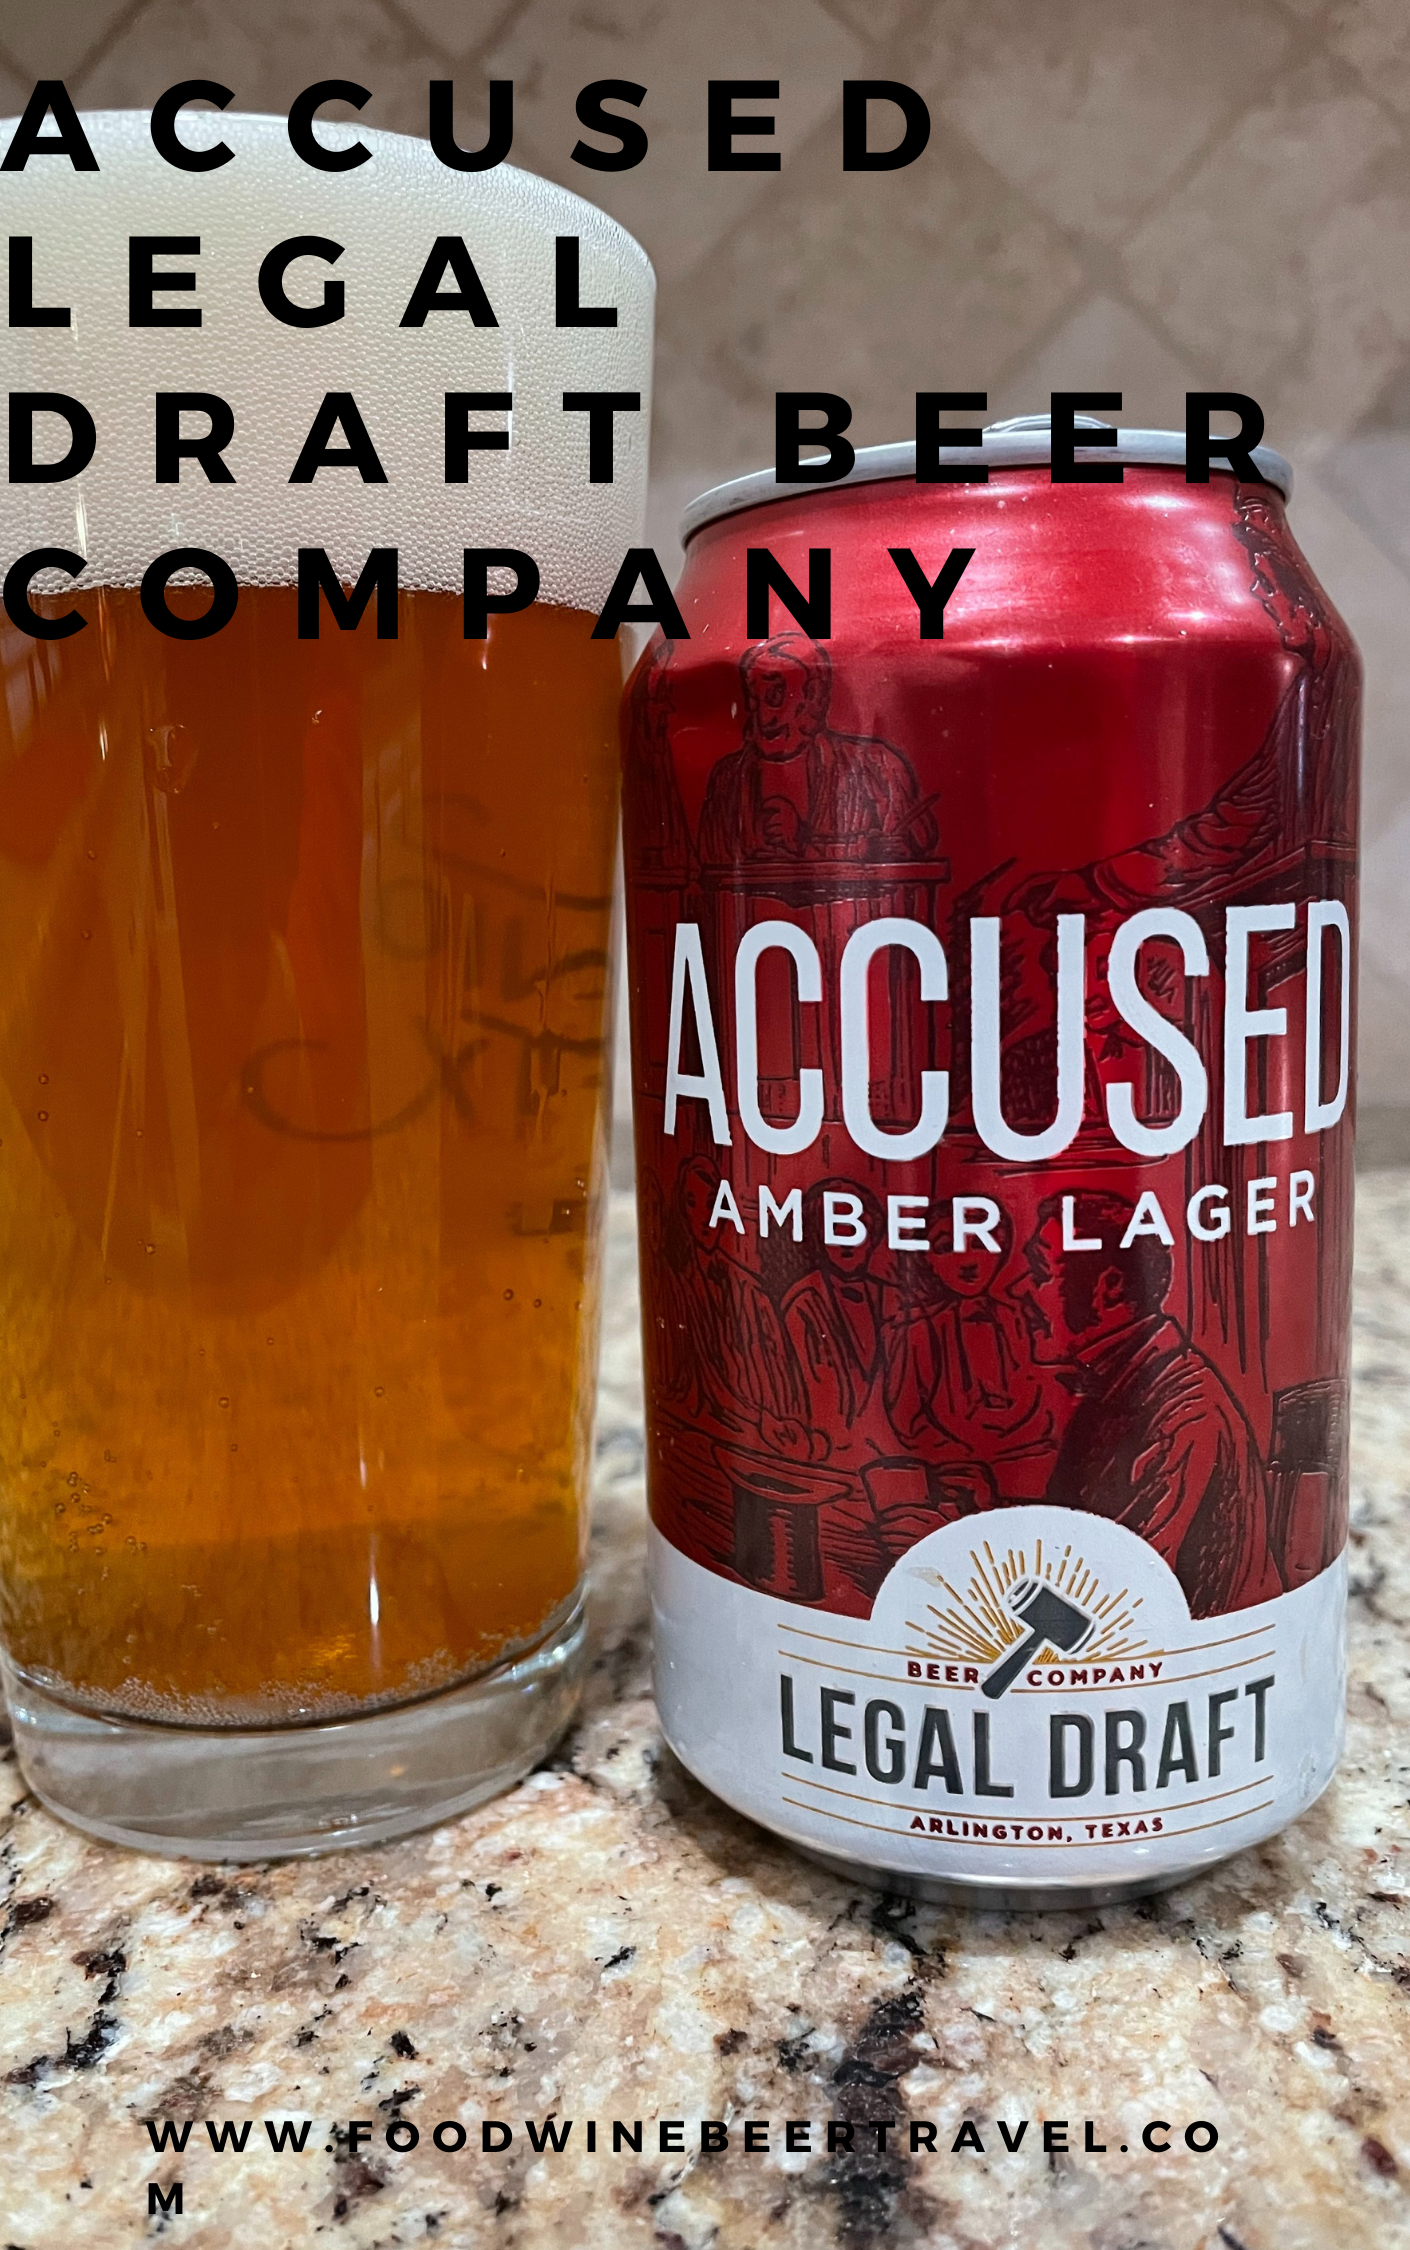 A Pinterest Pin of a can of Accused Amber lager from Legal Draft Brewing Company is next to a pint glass filled with an amber golden beer with a thick head floating on top.